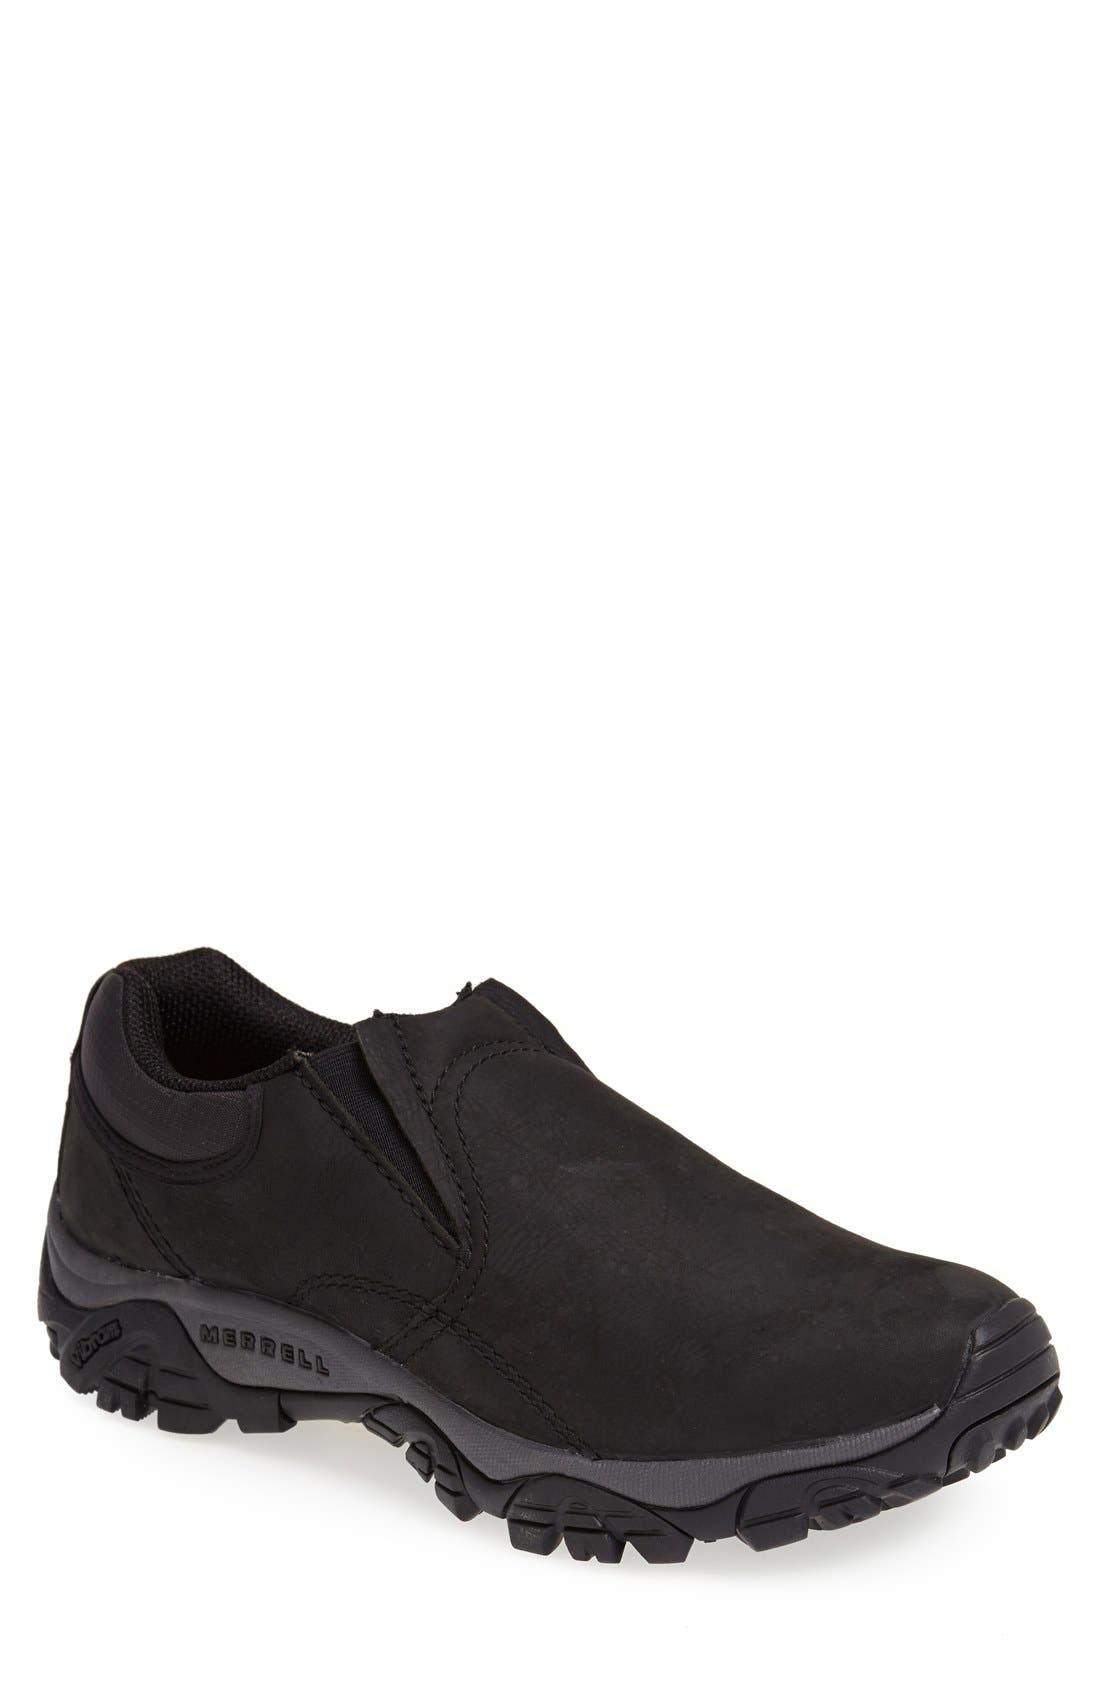 Main Image - Merrell 'Moab Rover Moc' Slip-On (Men)